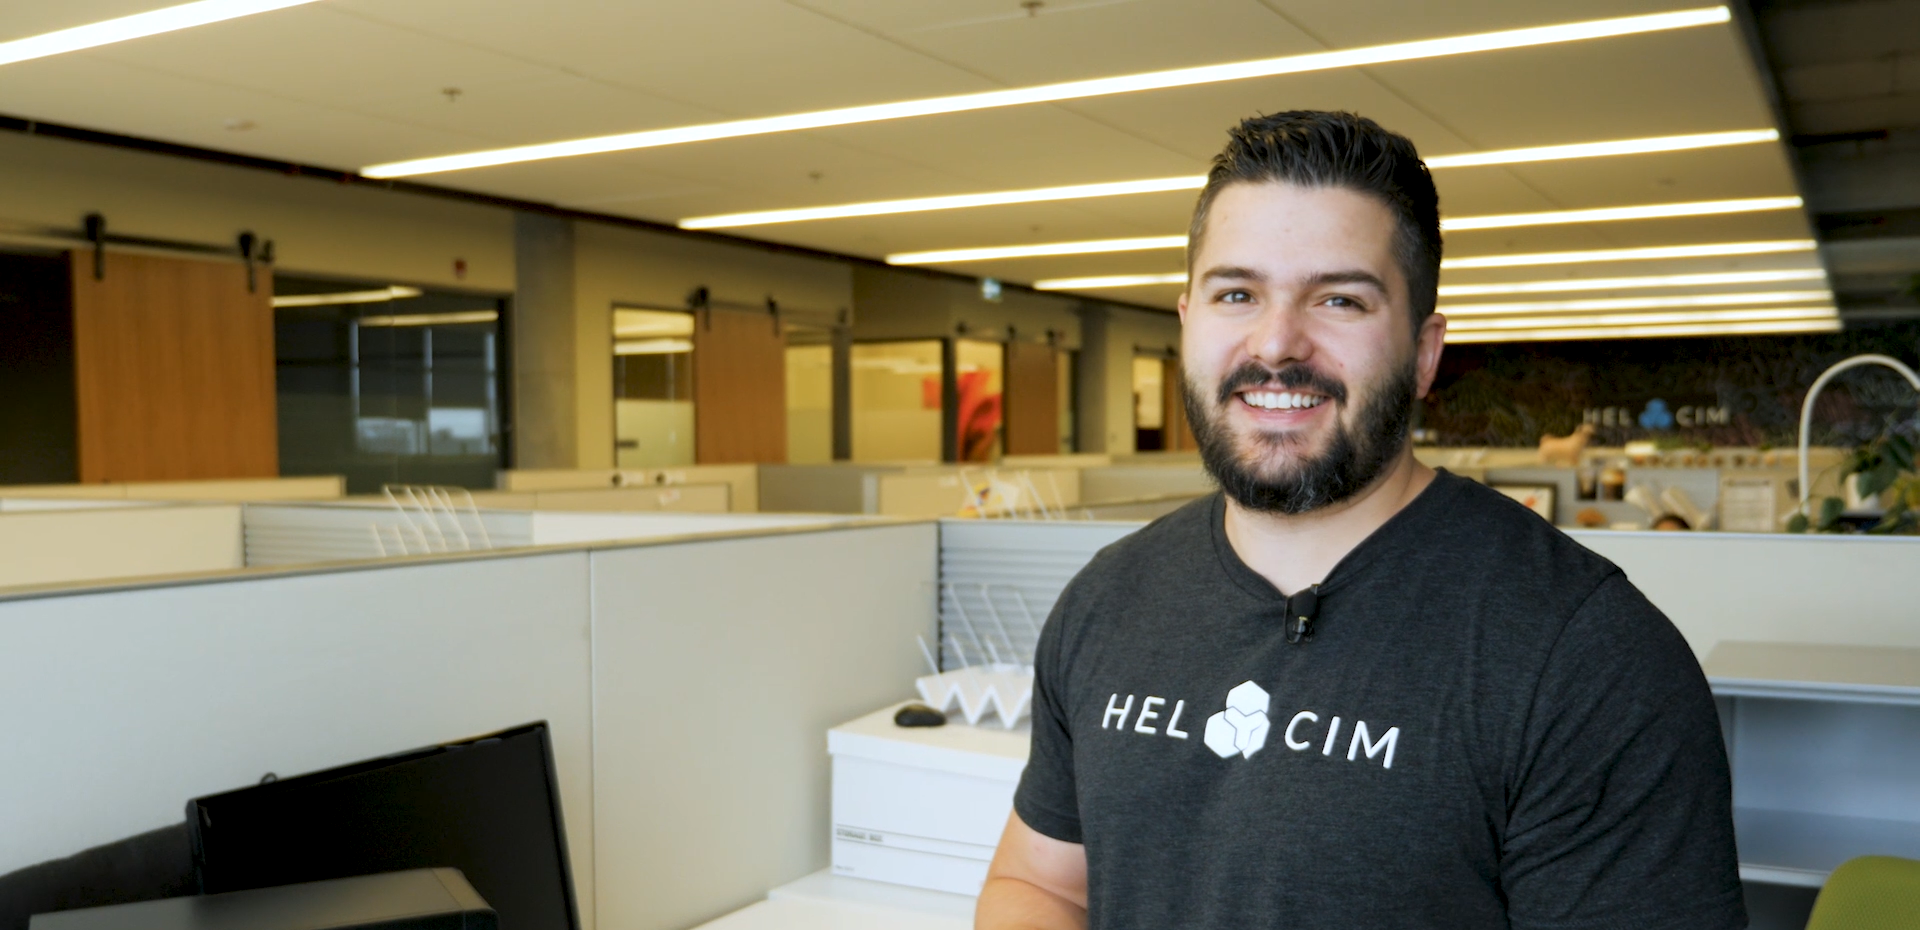 CEO Nic Beique at Helcim